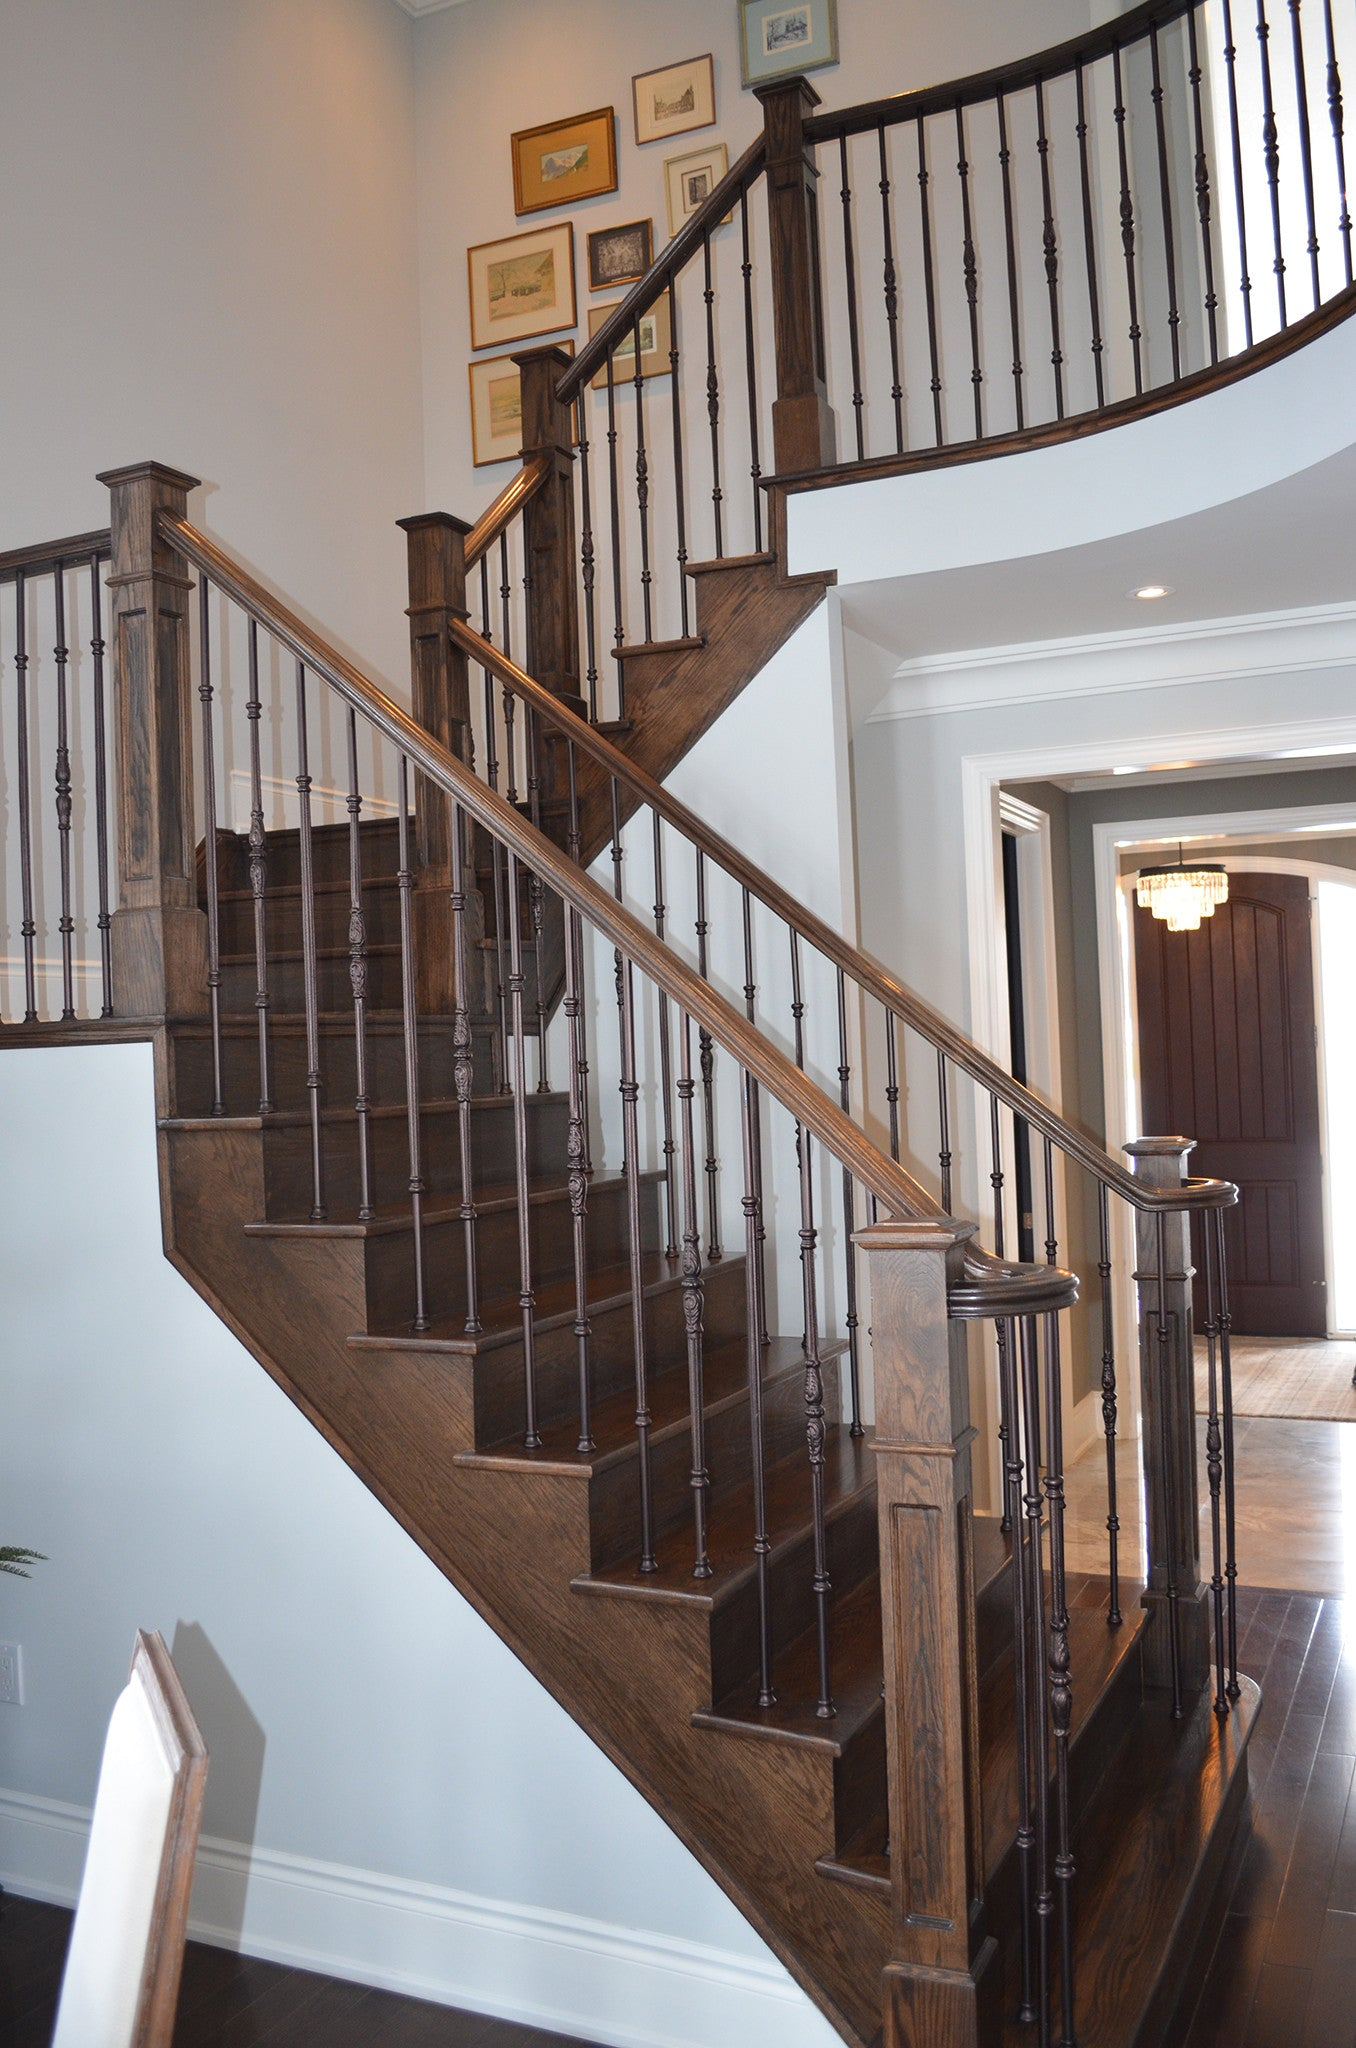 Charmant Stairs U0026 Railings Ideal Railings   Wrought Iron And Dark Wood Stairs